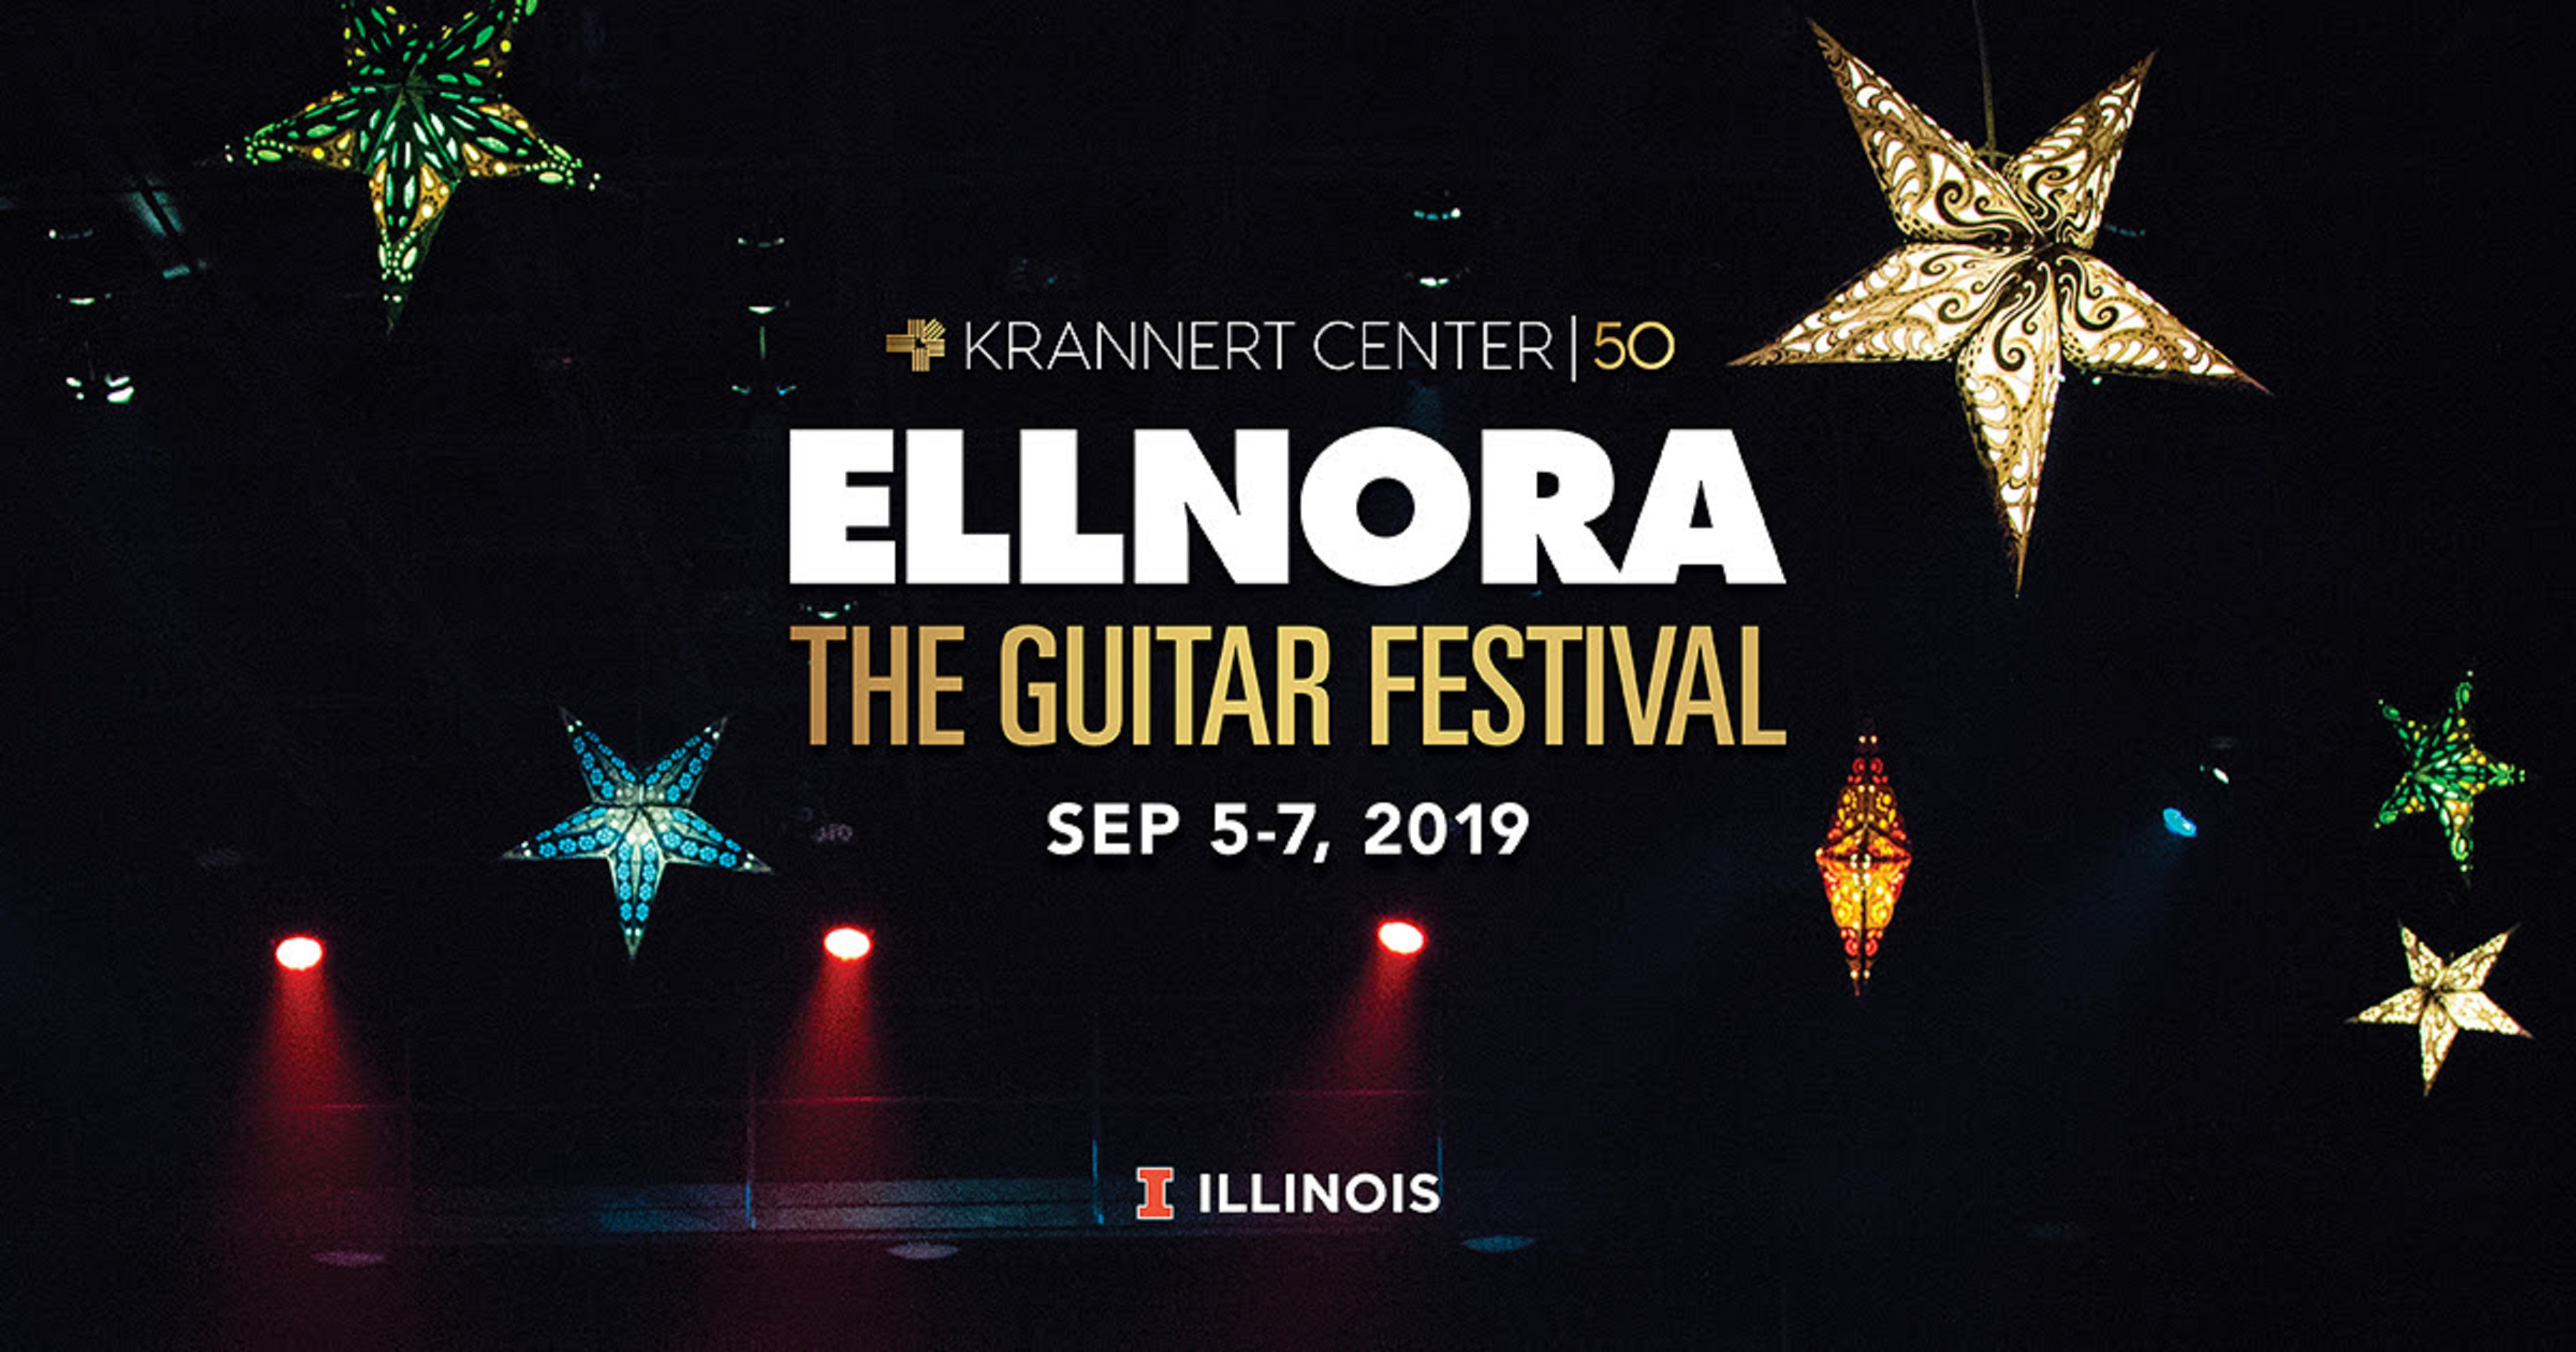 ELLNORA | The Guitar Festival Announces 2019 Dates